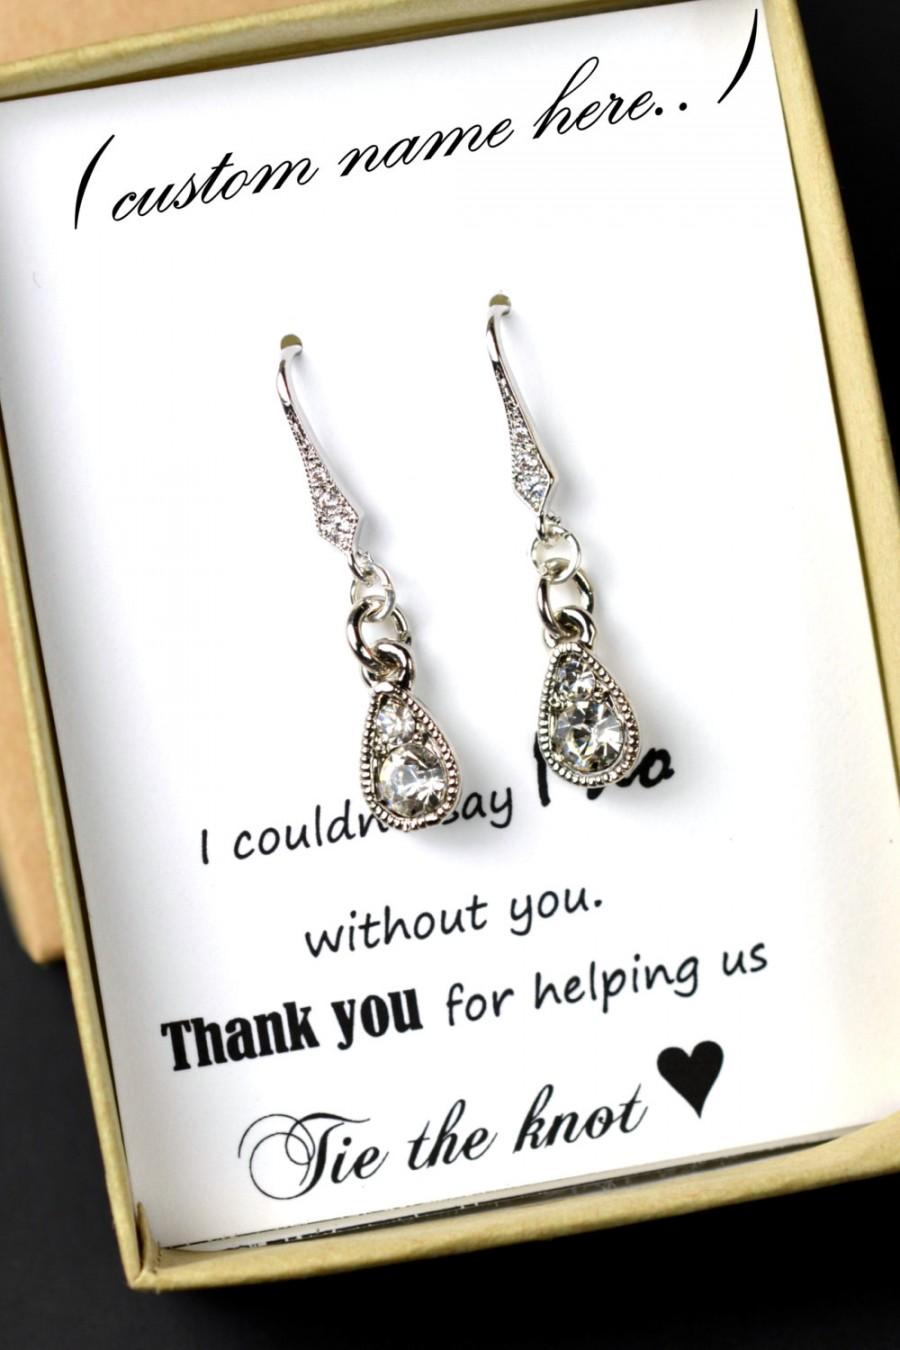 Appropriate Wedding Gift For Friends Daughter : Wedding - Wedding Jewelry Bridesmaid Gift Bridesmaid Jewelry Bridal ...